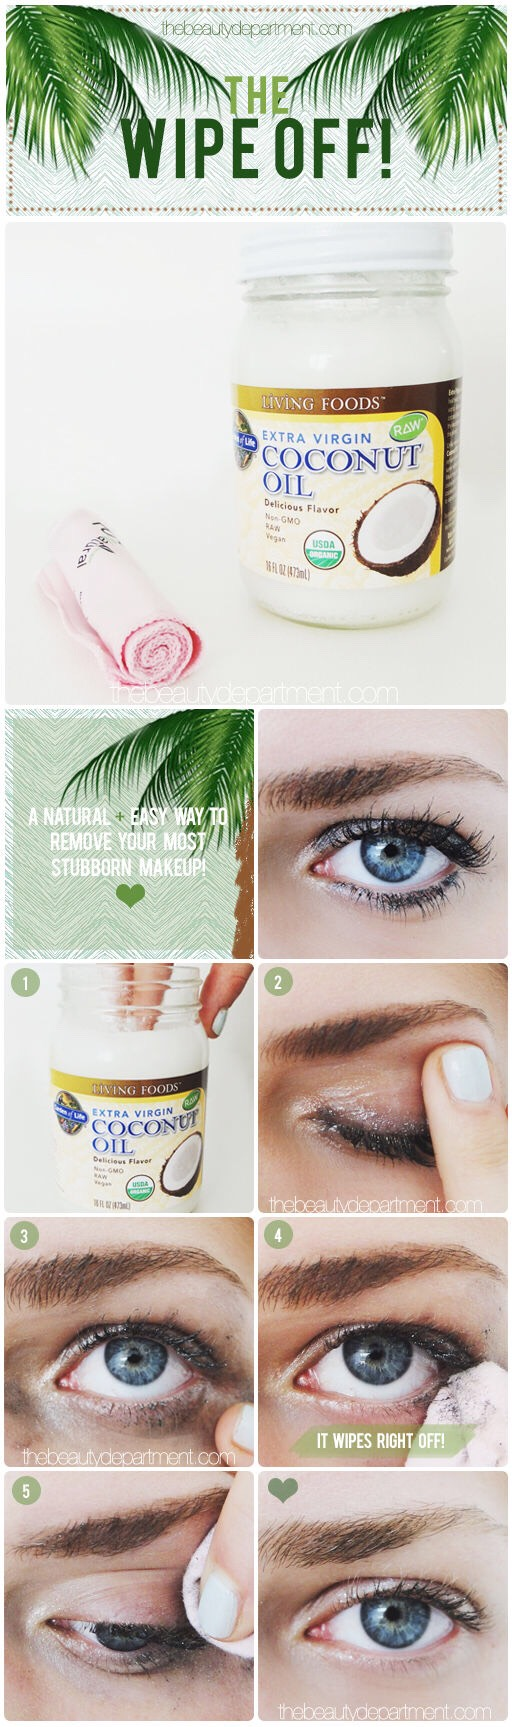 If you don't have any makeup remover, just use coconut oil.